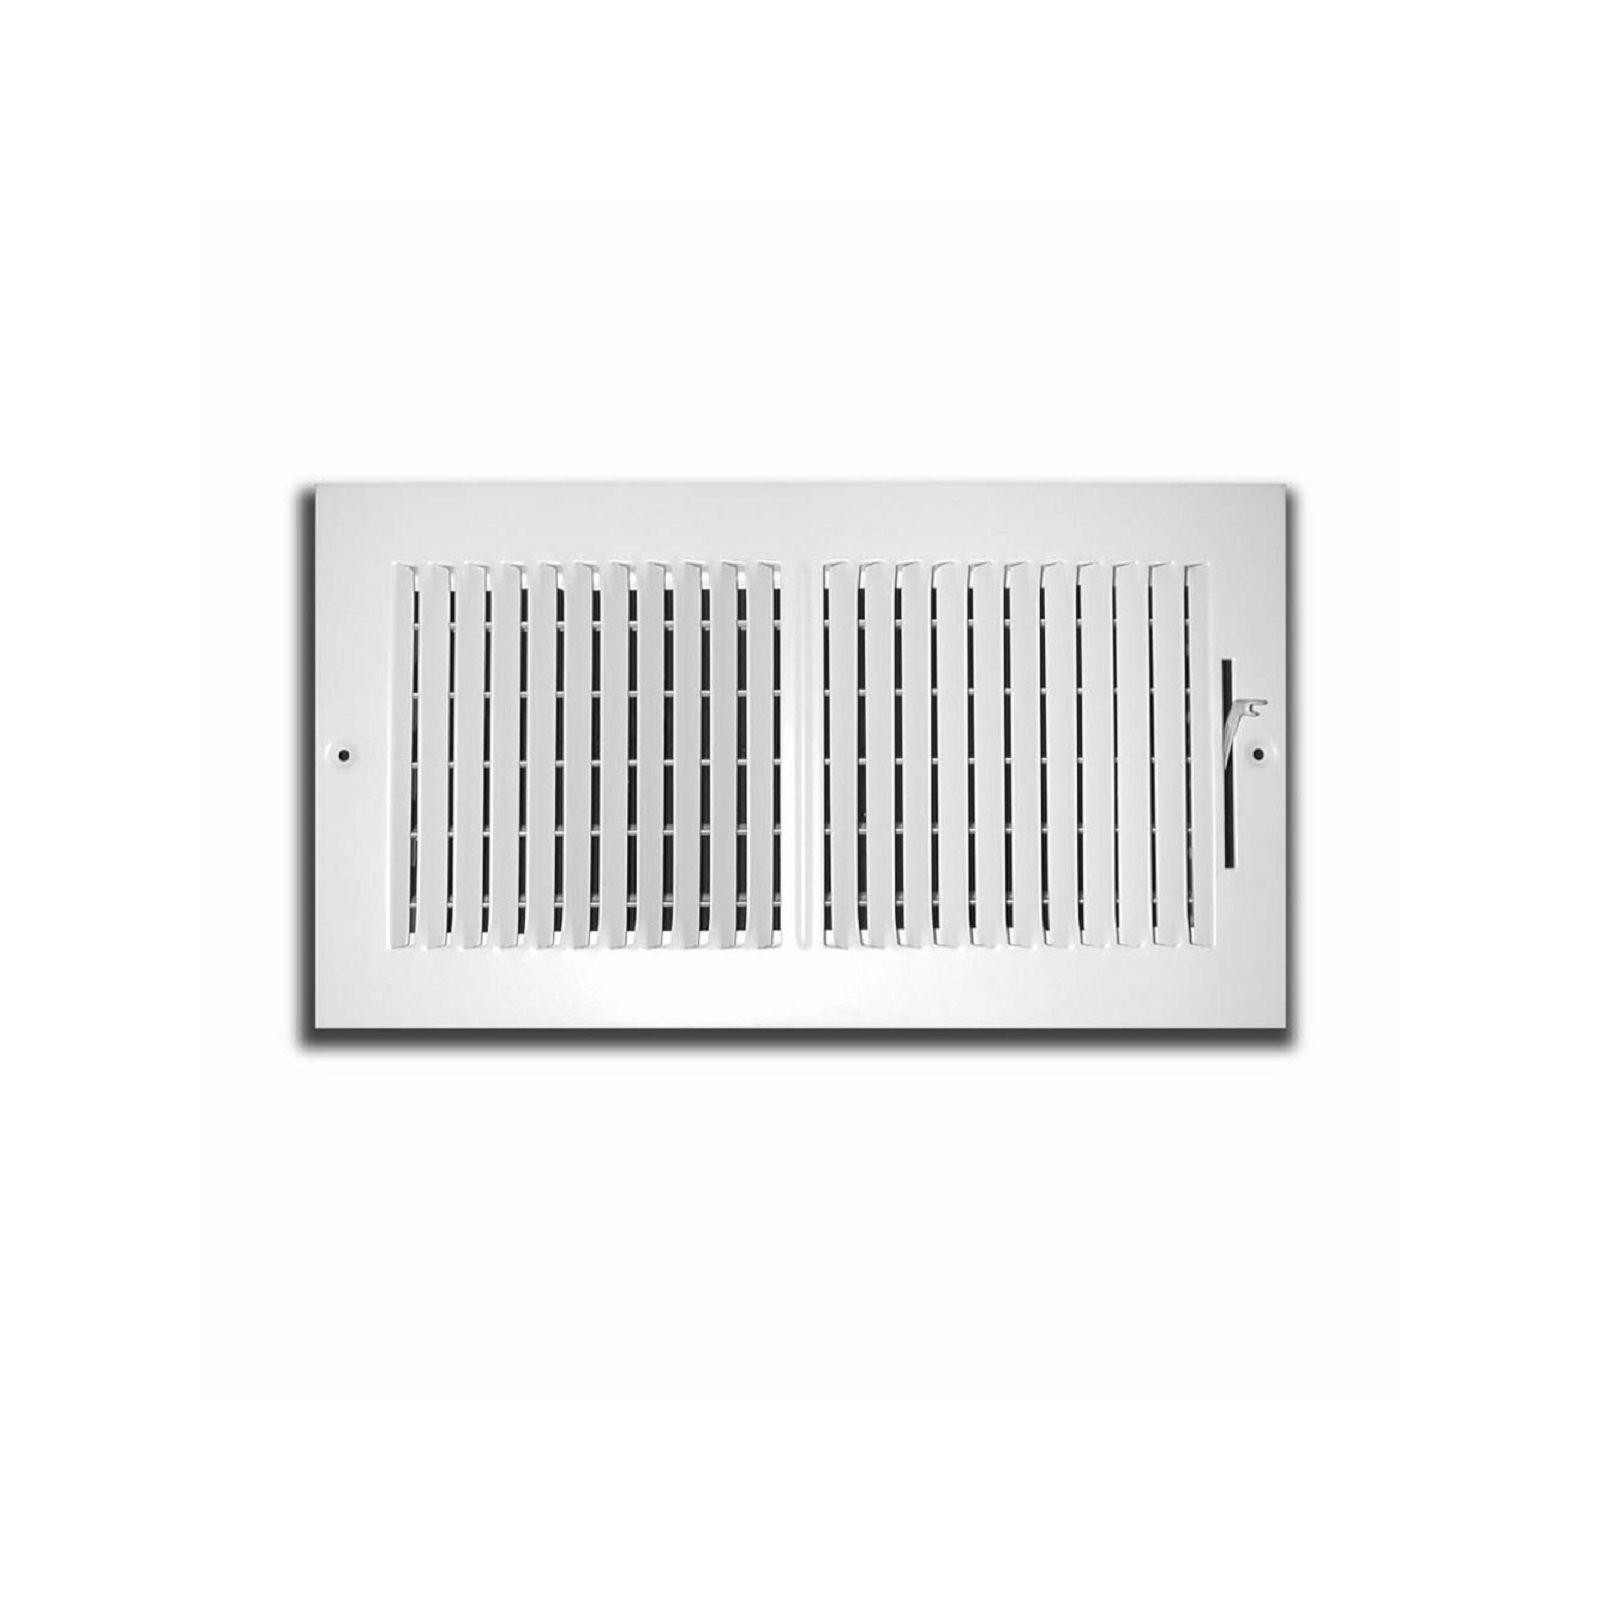 "TRUaire 102M 14X04 - Stamped Steel 2-Way Wall/Ceiling Register, 14"" X 04"""